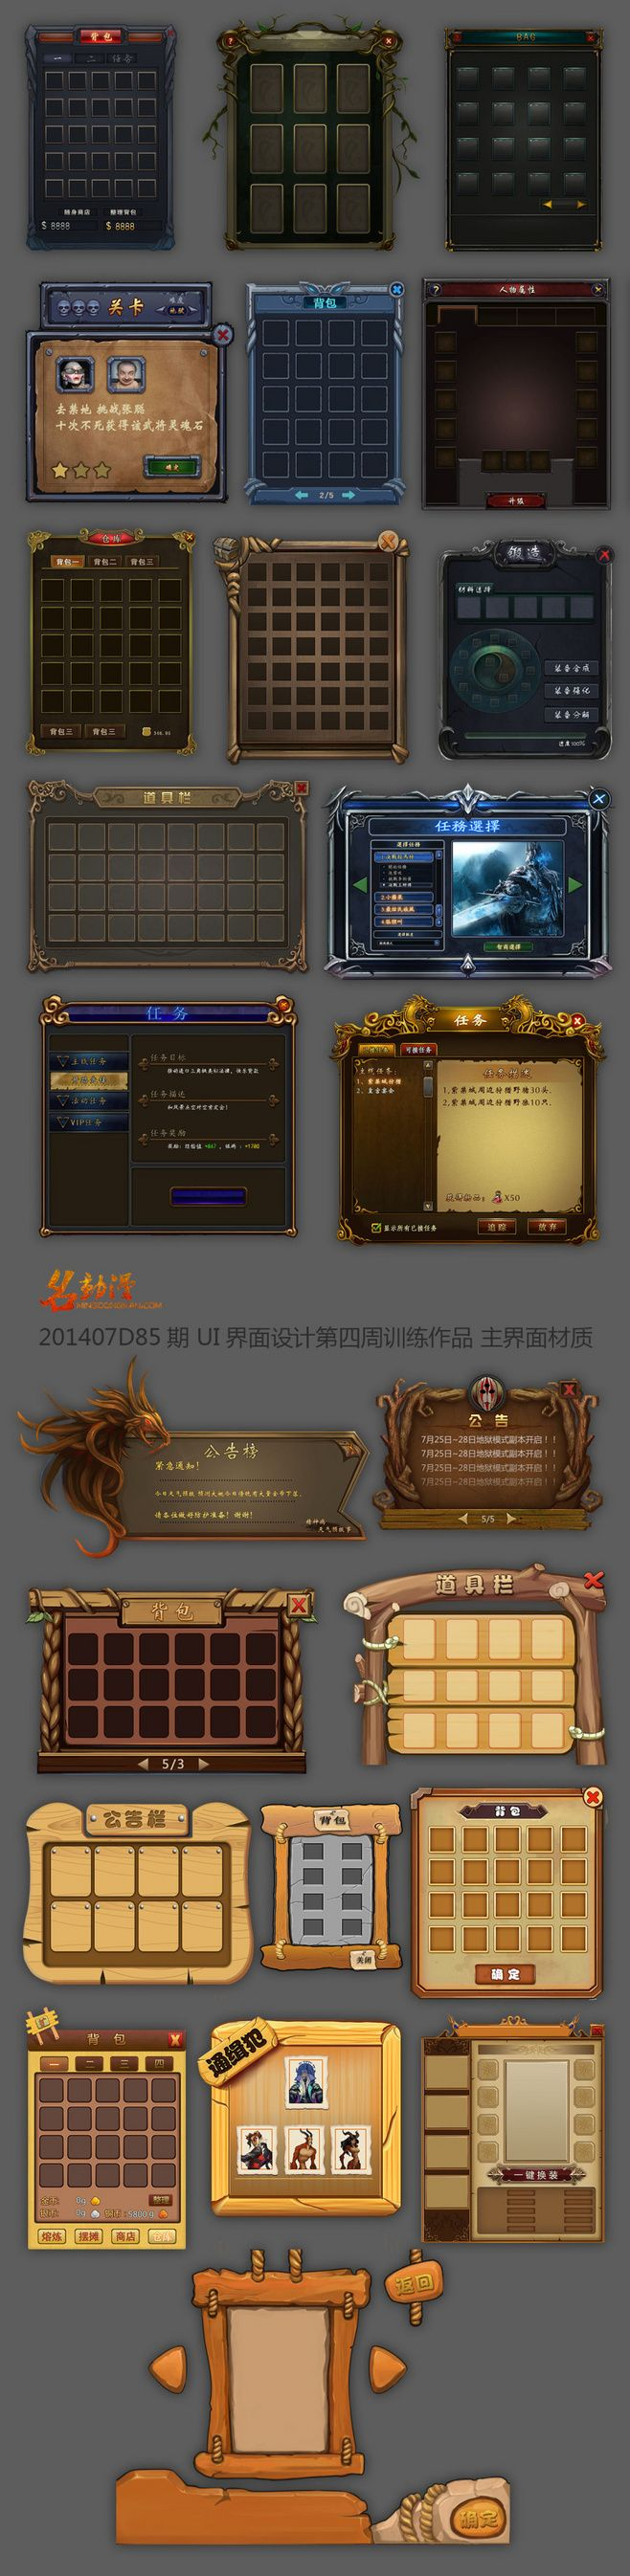 原创作品:游戏UI作品——功能图标,徽章... Game UI | Create your own roleplaying game books w/ RPG…